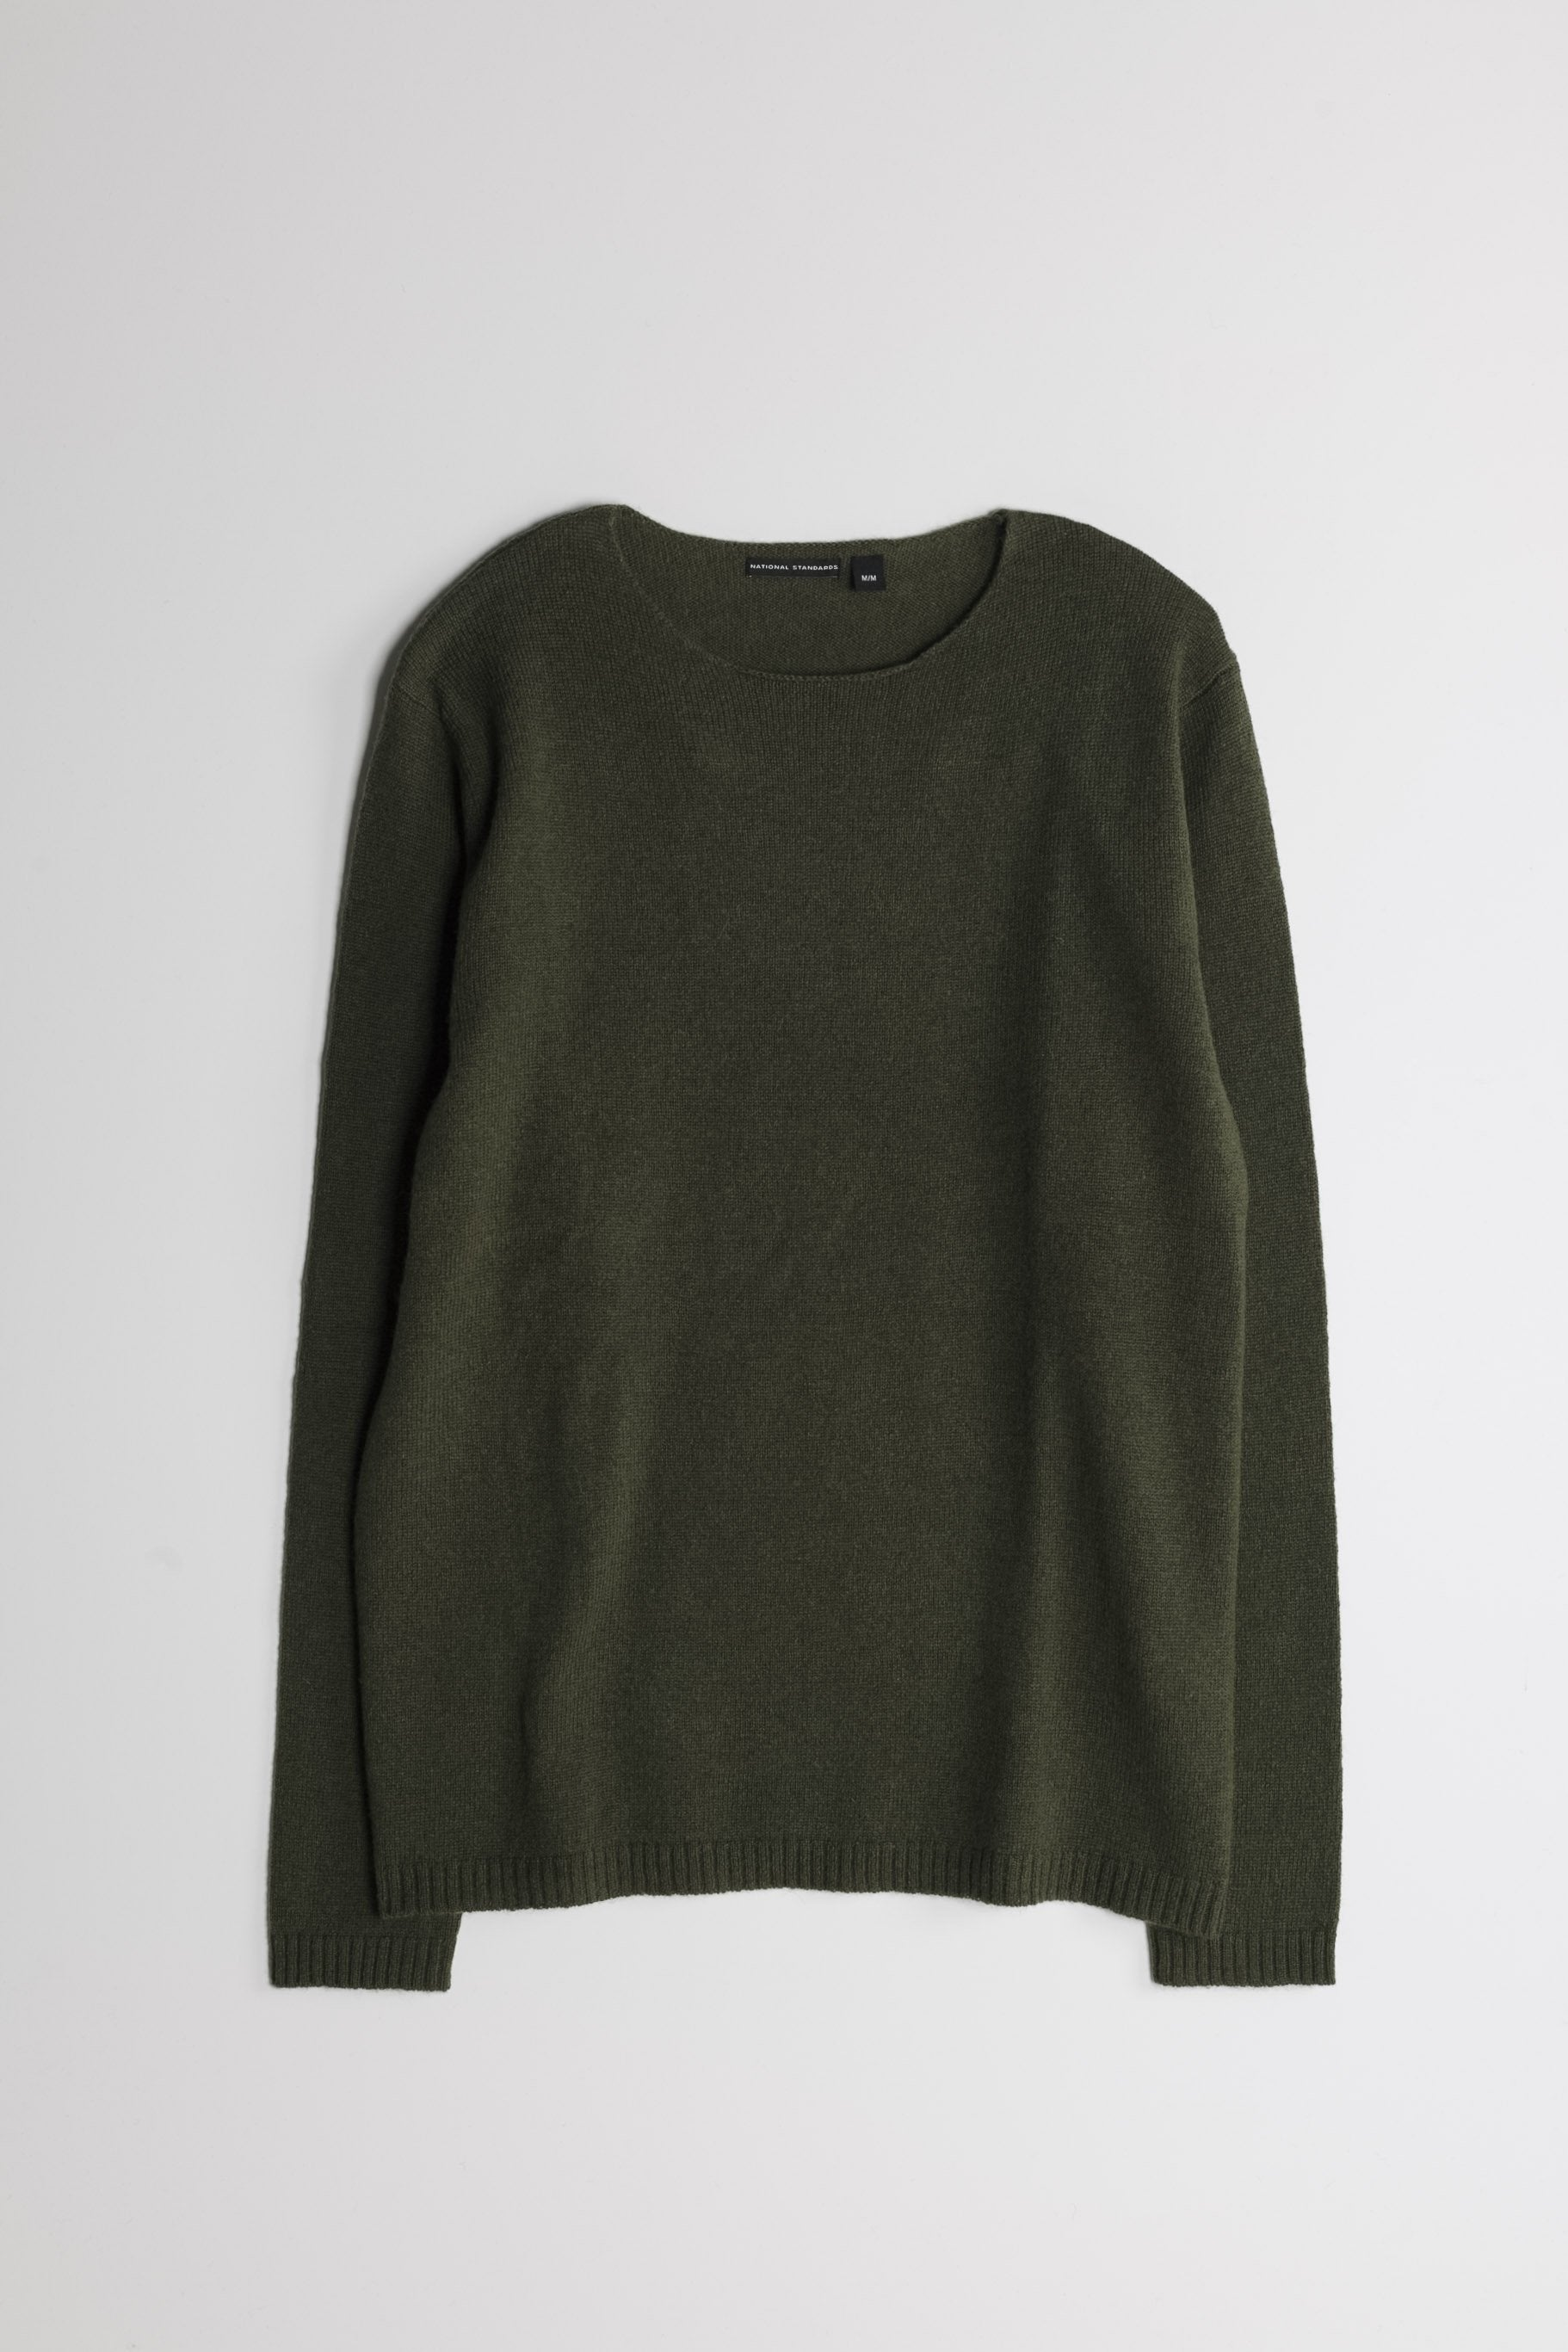 Lambswool Wide Neck in Army Green 01